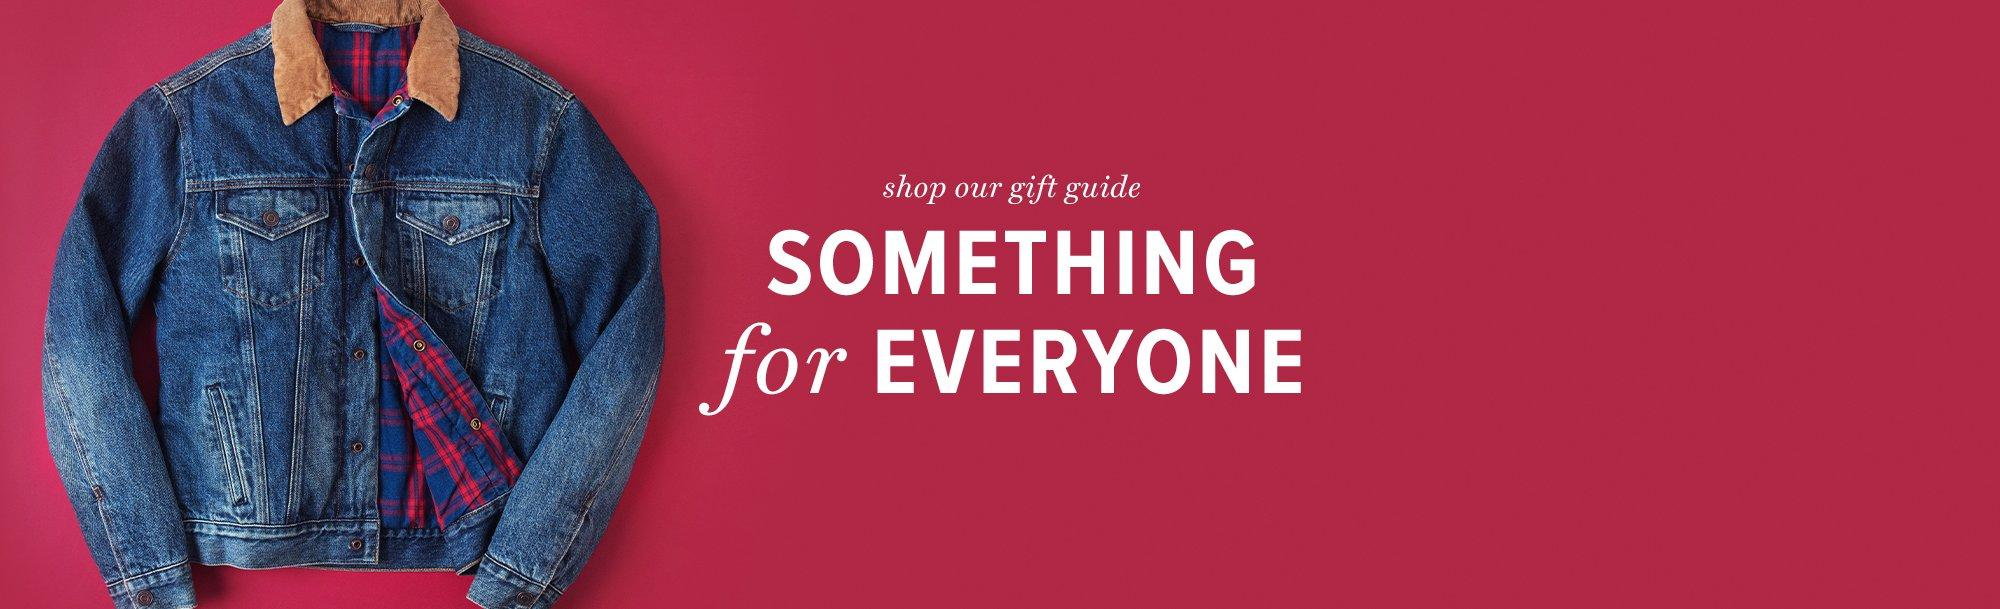 something for everyone - gift guide